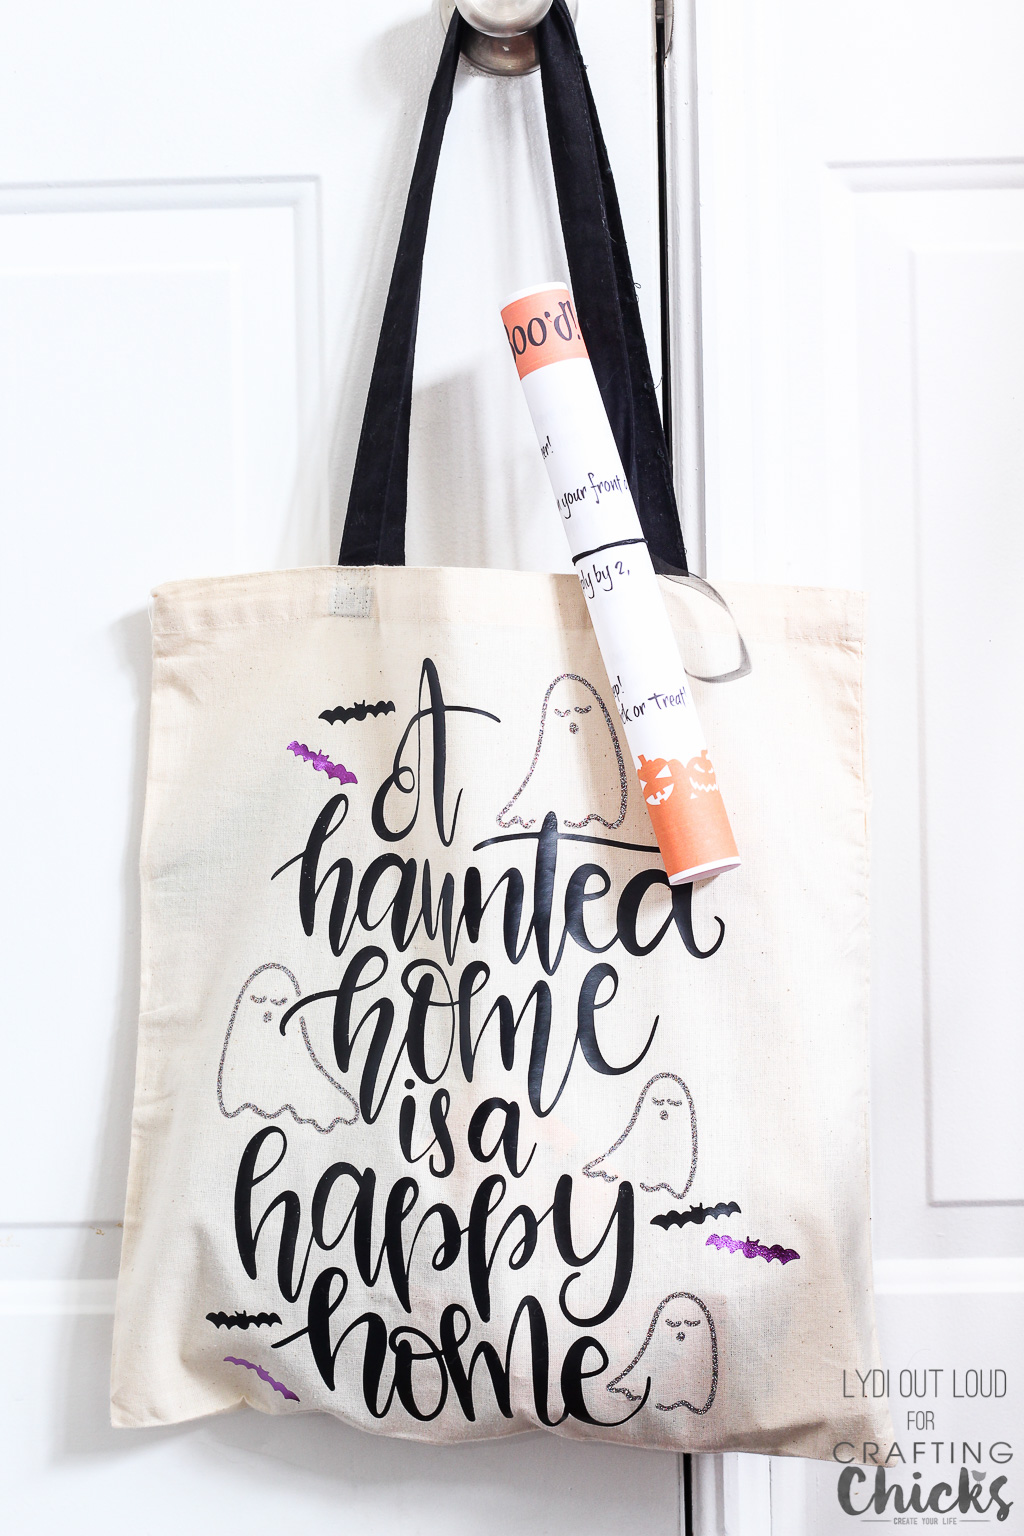 Boo your neighbors with an adorable Halloween tote bag! #Halloween #YouveBeenBood #HalloweenNeighbor Gifts